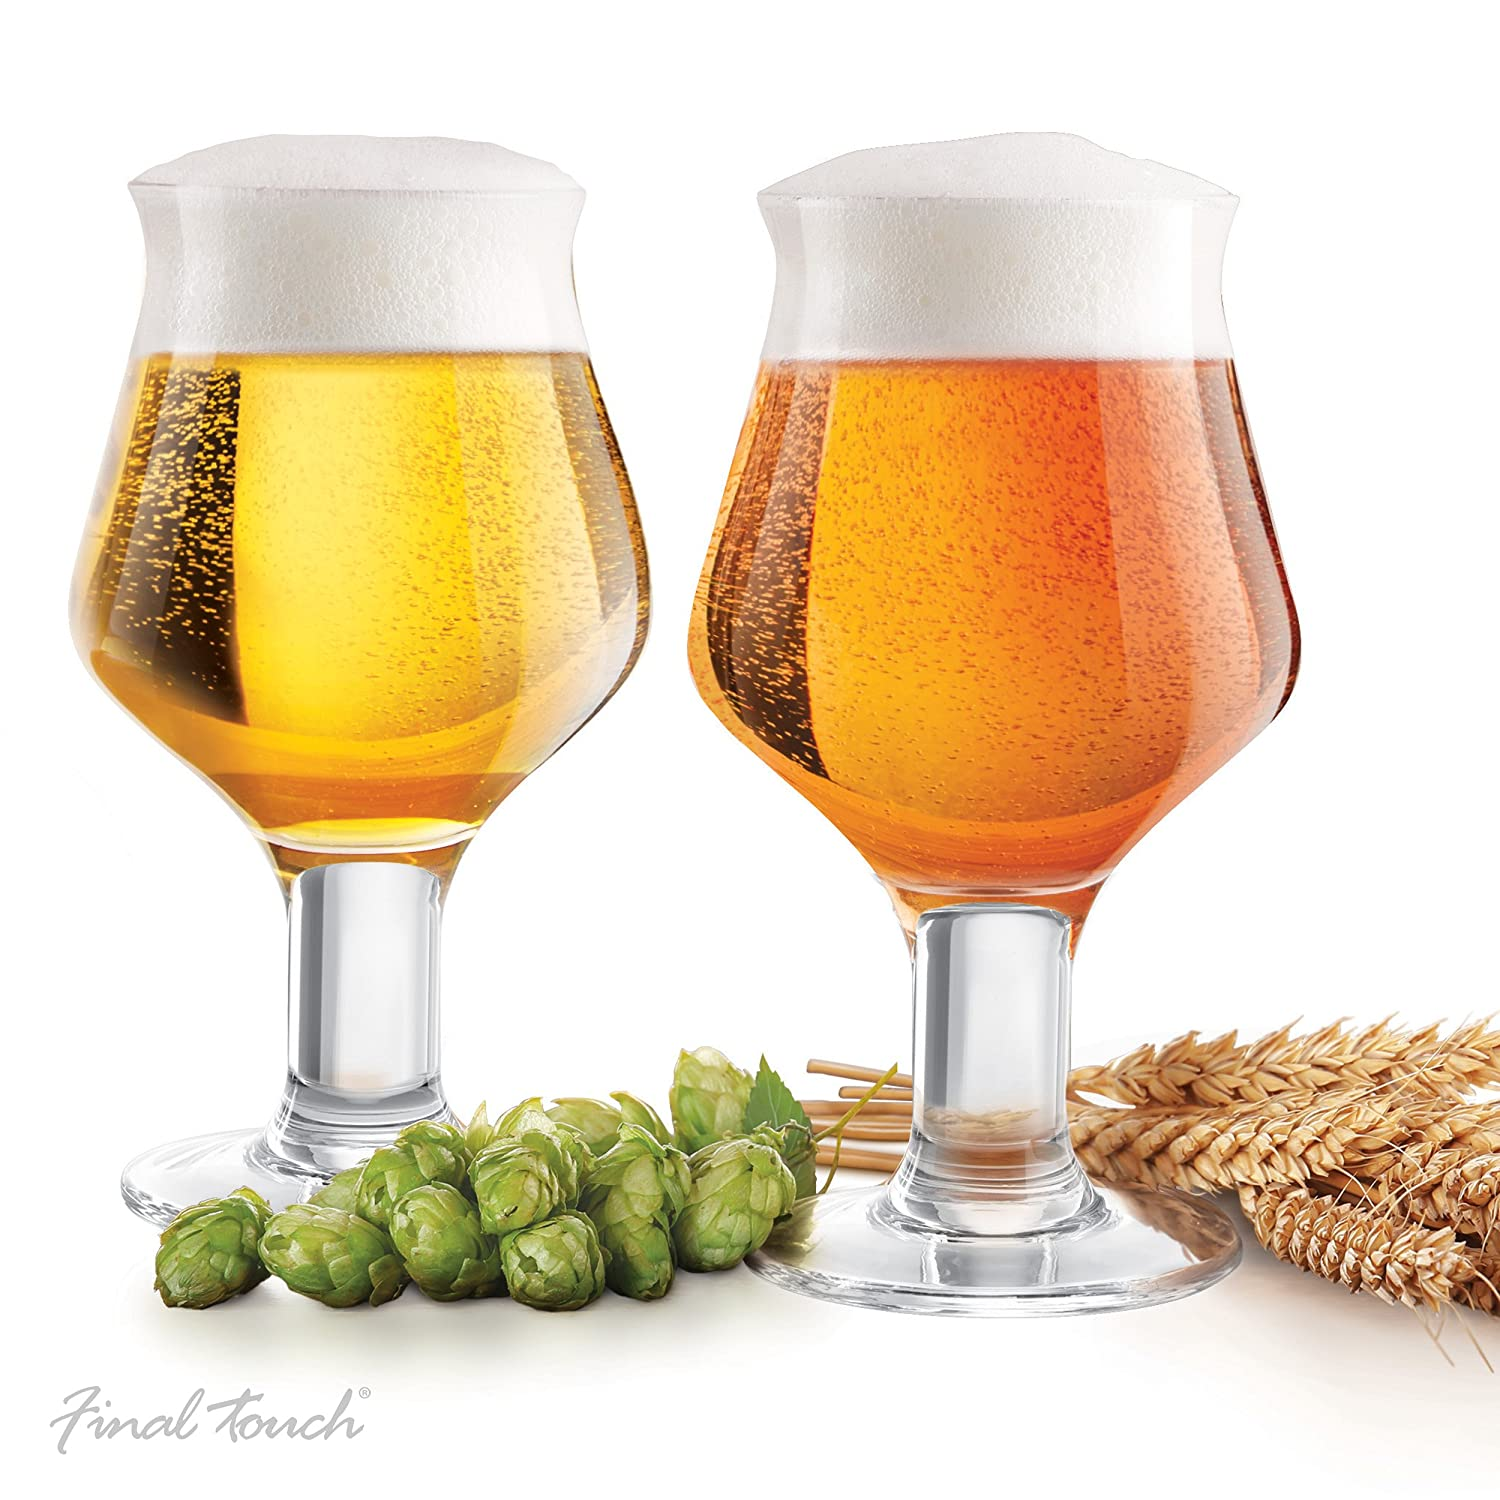 Final Touch Craft Beer Glasses, Set of 2